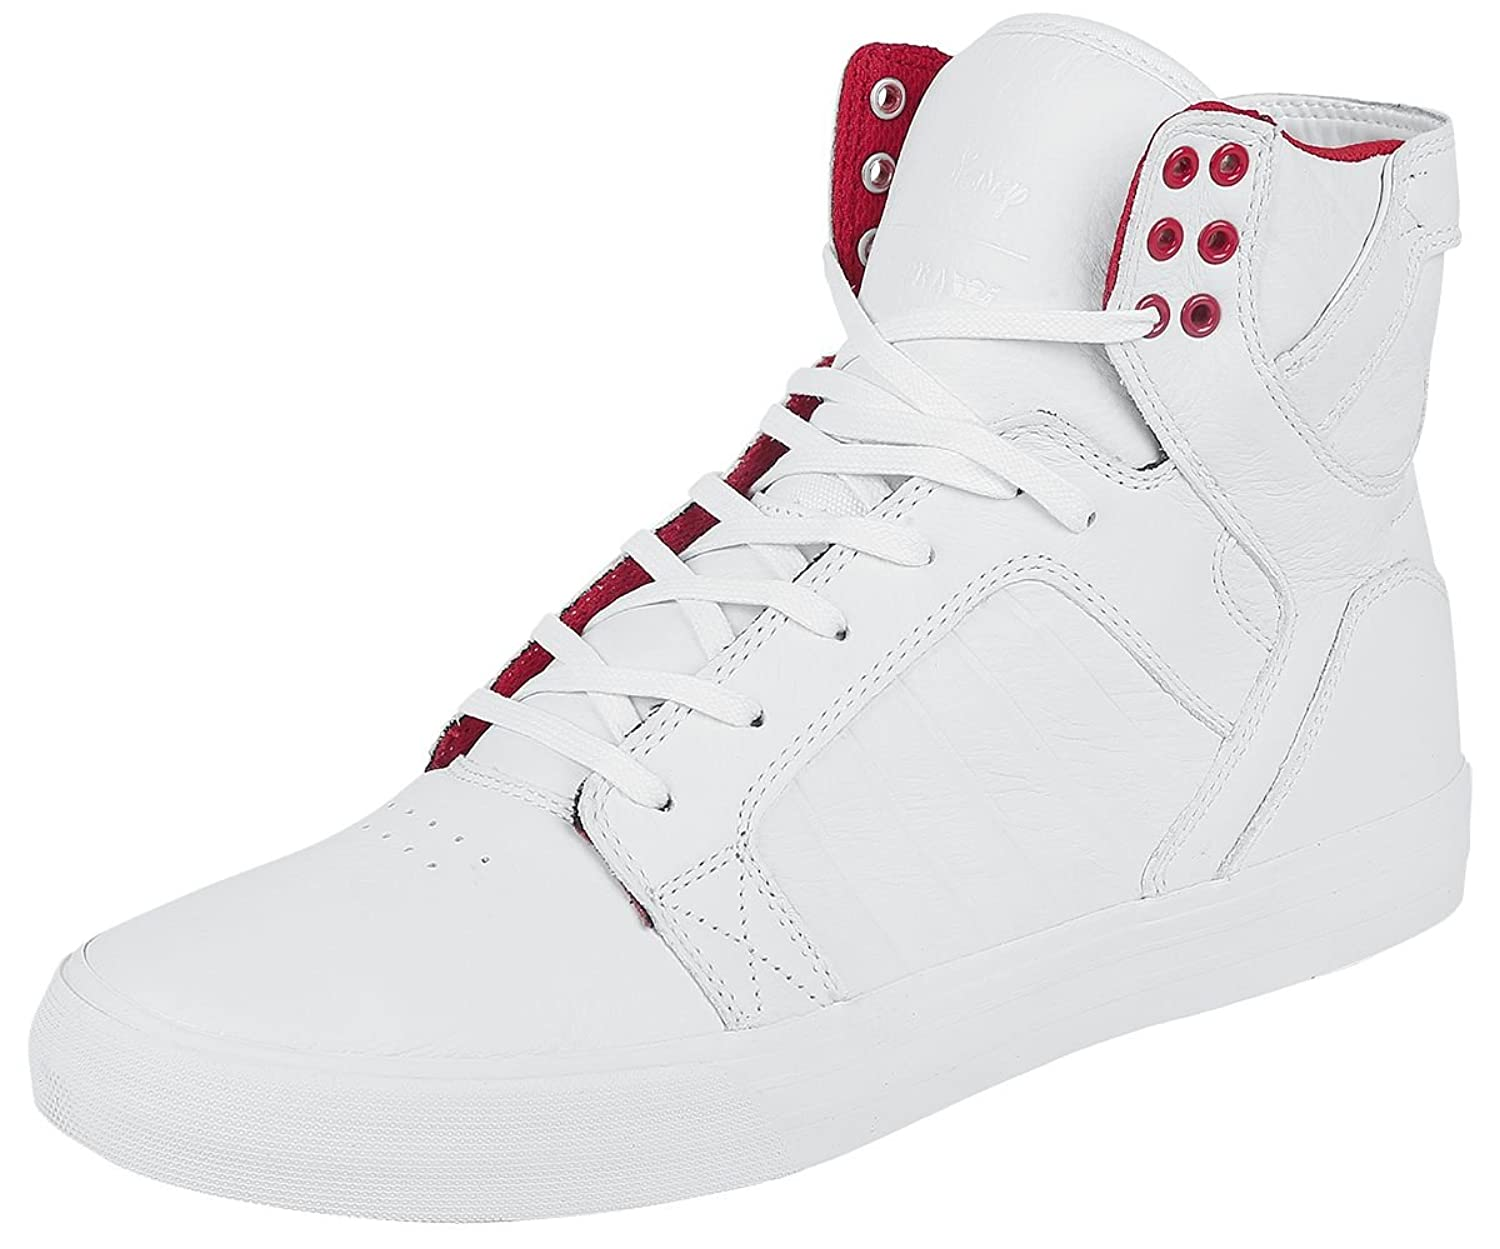 Supra Skytop Snow White-M 08174-106-M Shoes Mens Mens 4